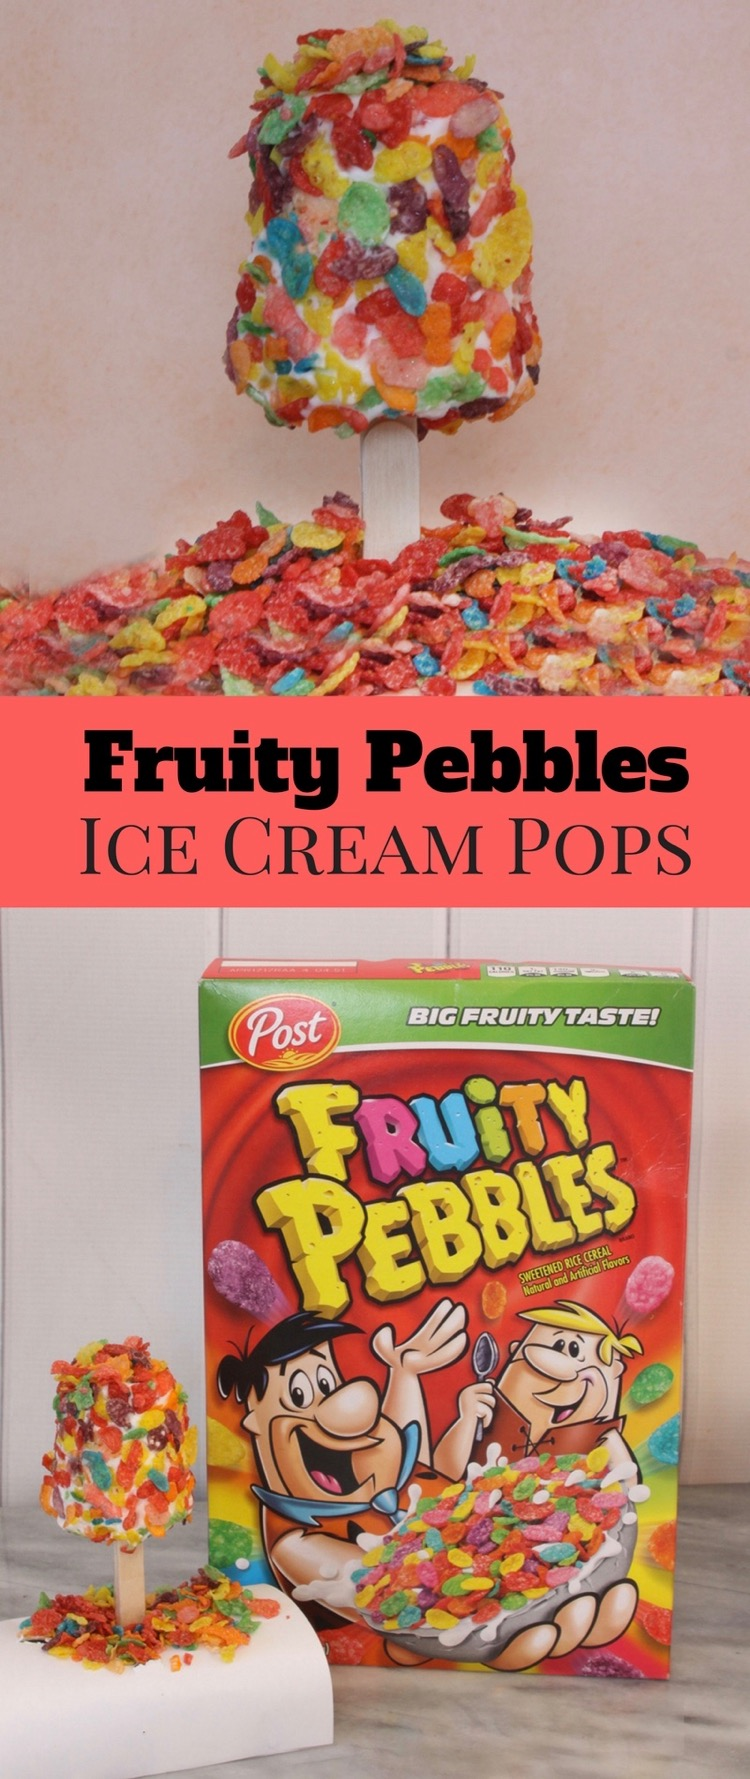 Fruity Pebbles Ice Cream Pops